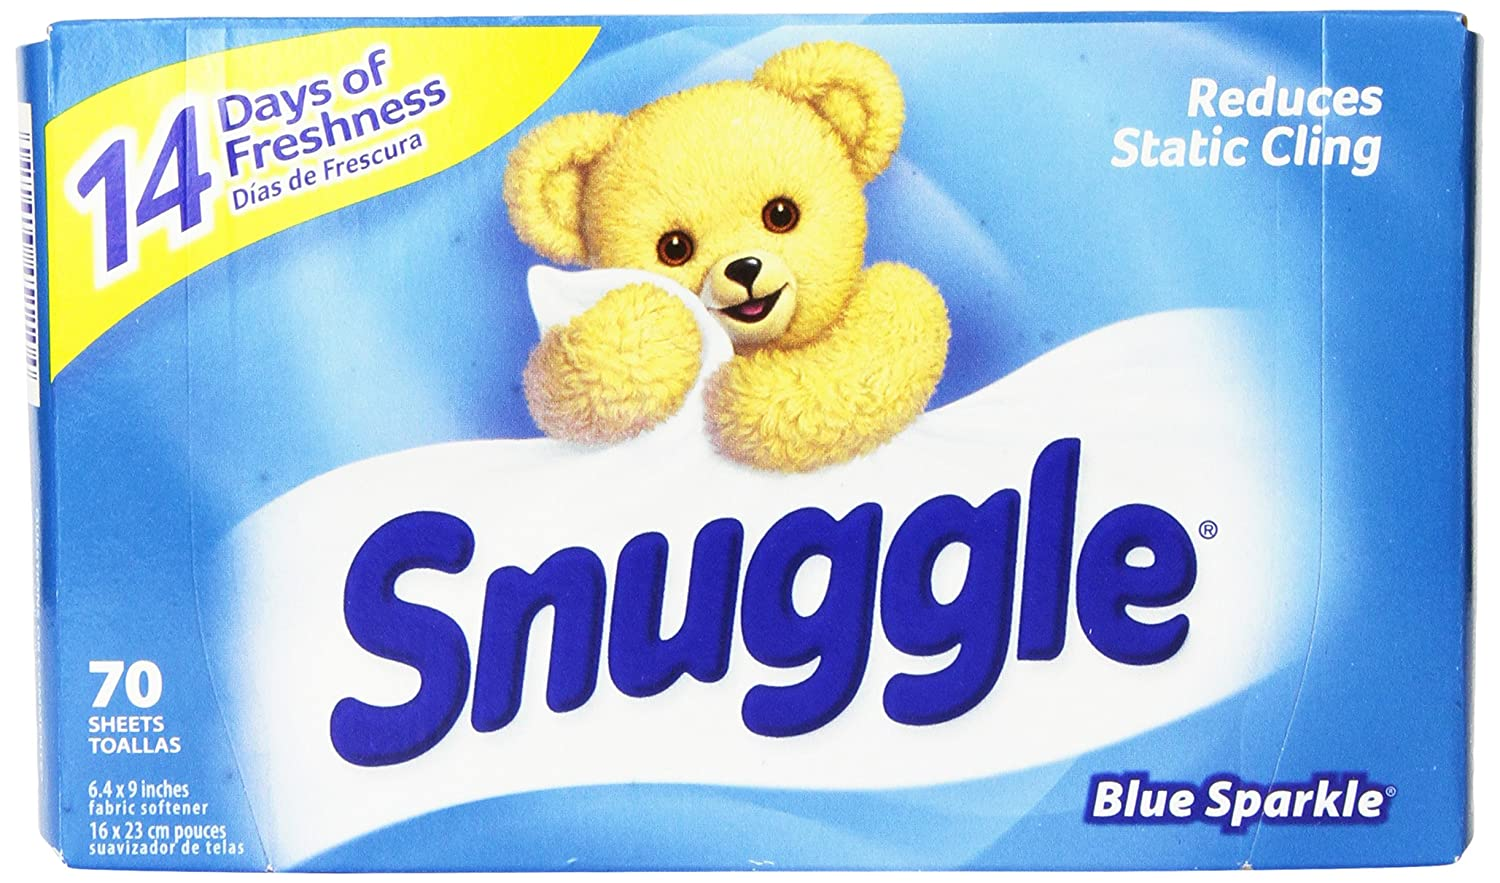 Amazon.com: Snuggle Fabric Softener Dryer Sheets, Blue Sparkle, 70 Count: Health & Personal Care